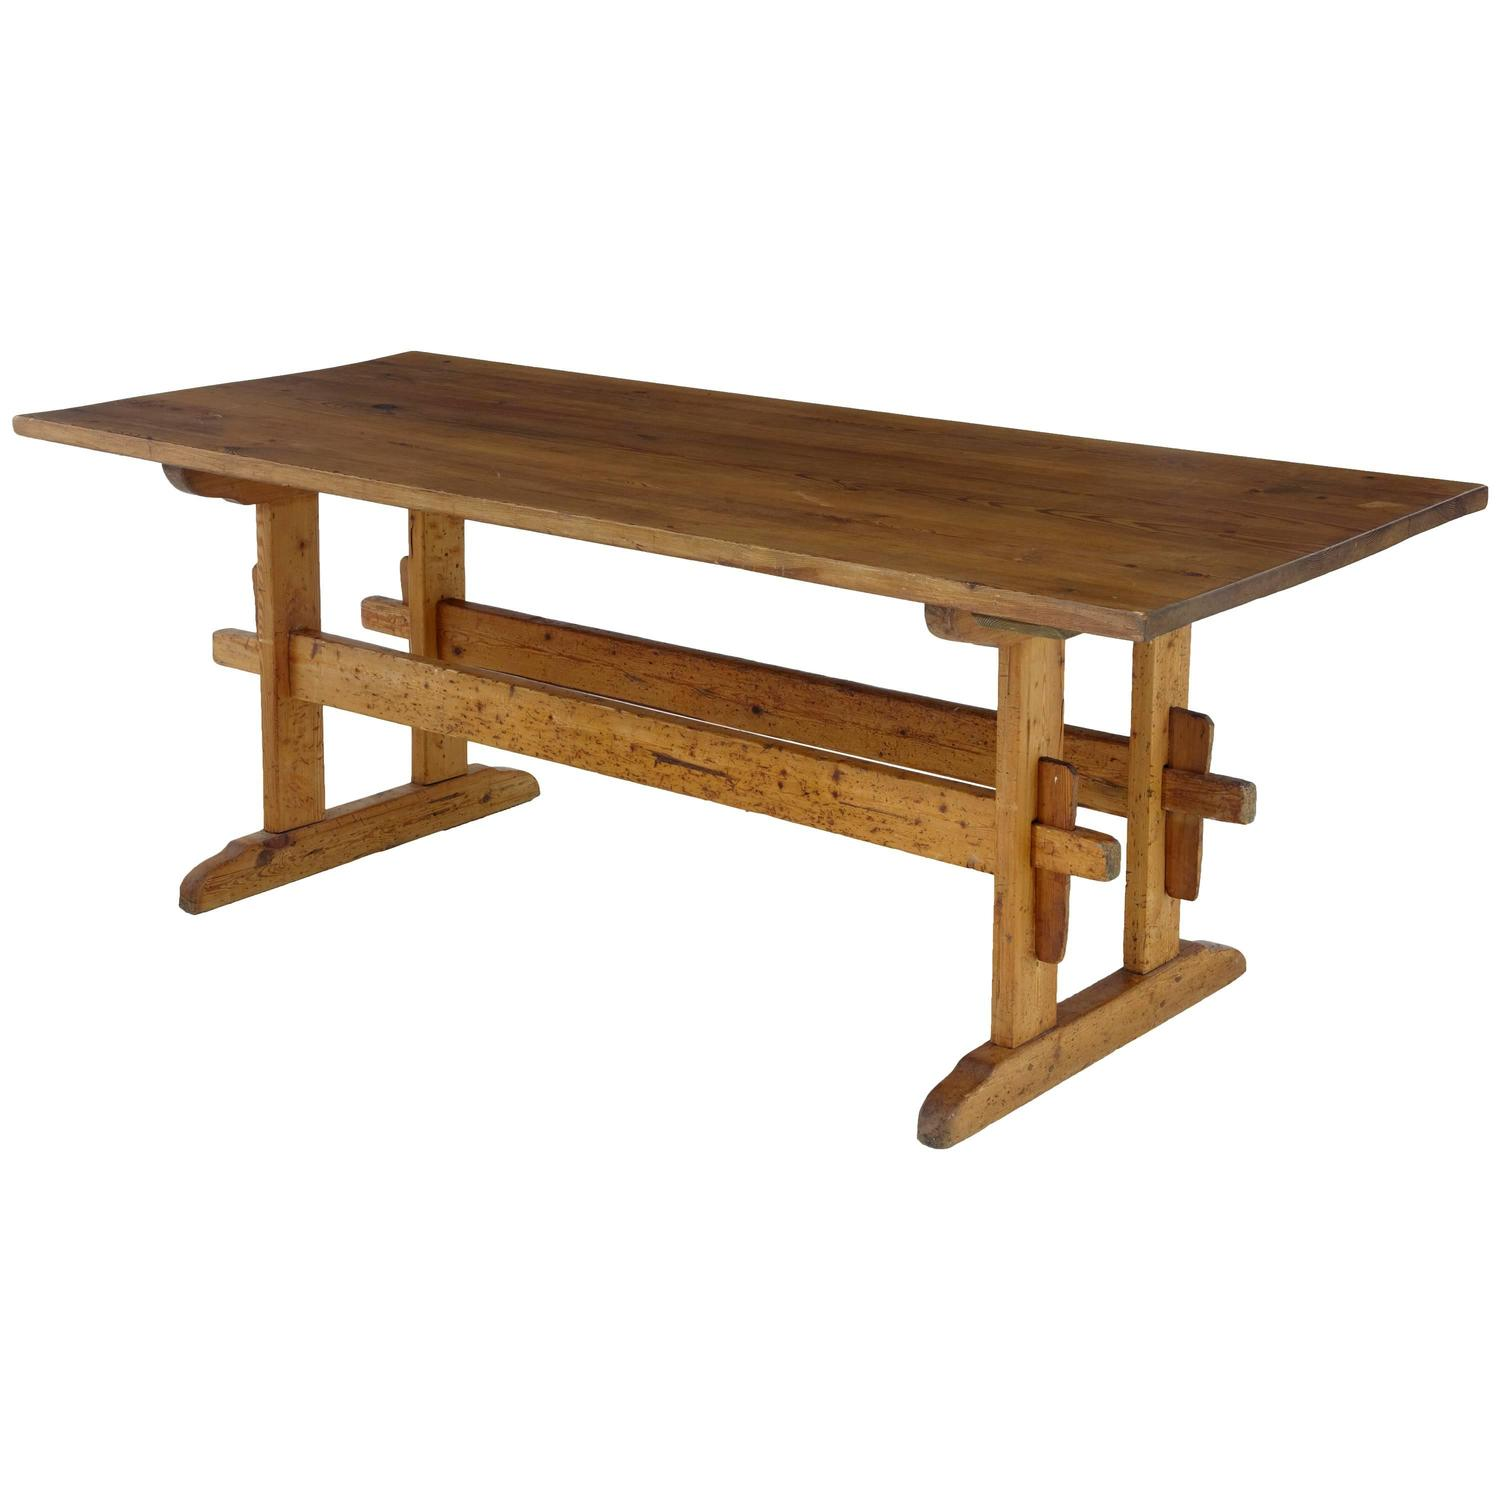 19th century swedish pine refectory table at 1stdibs geotapseo Gallery